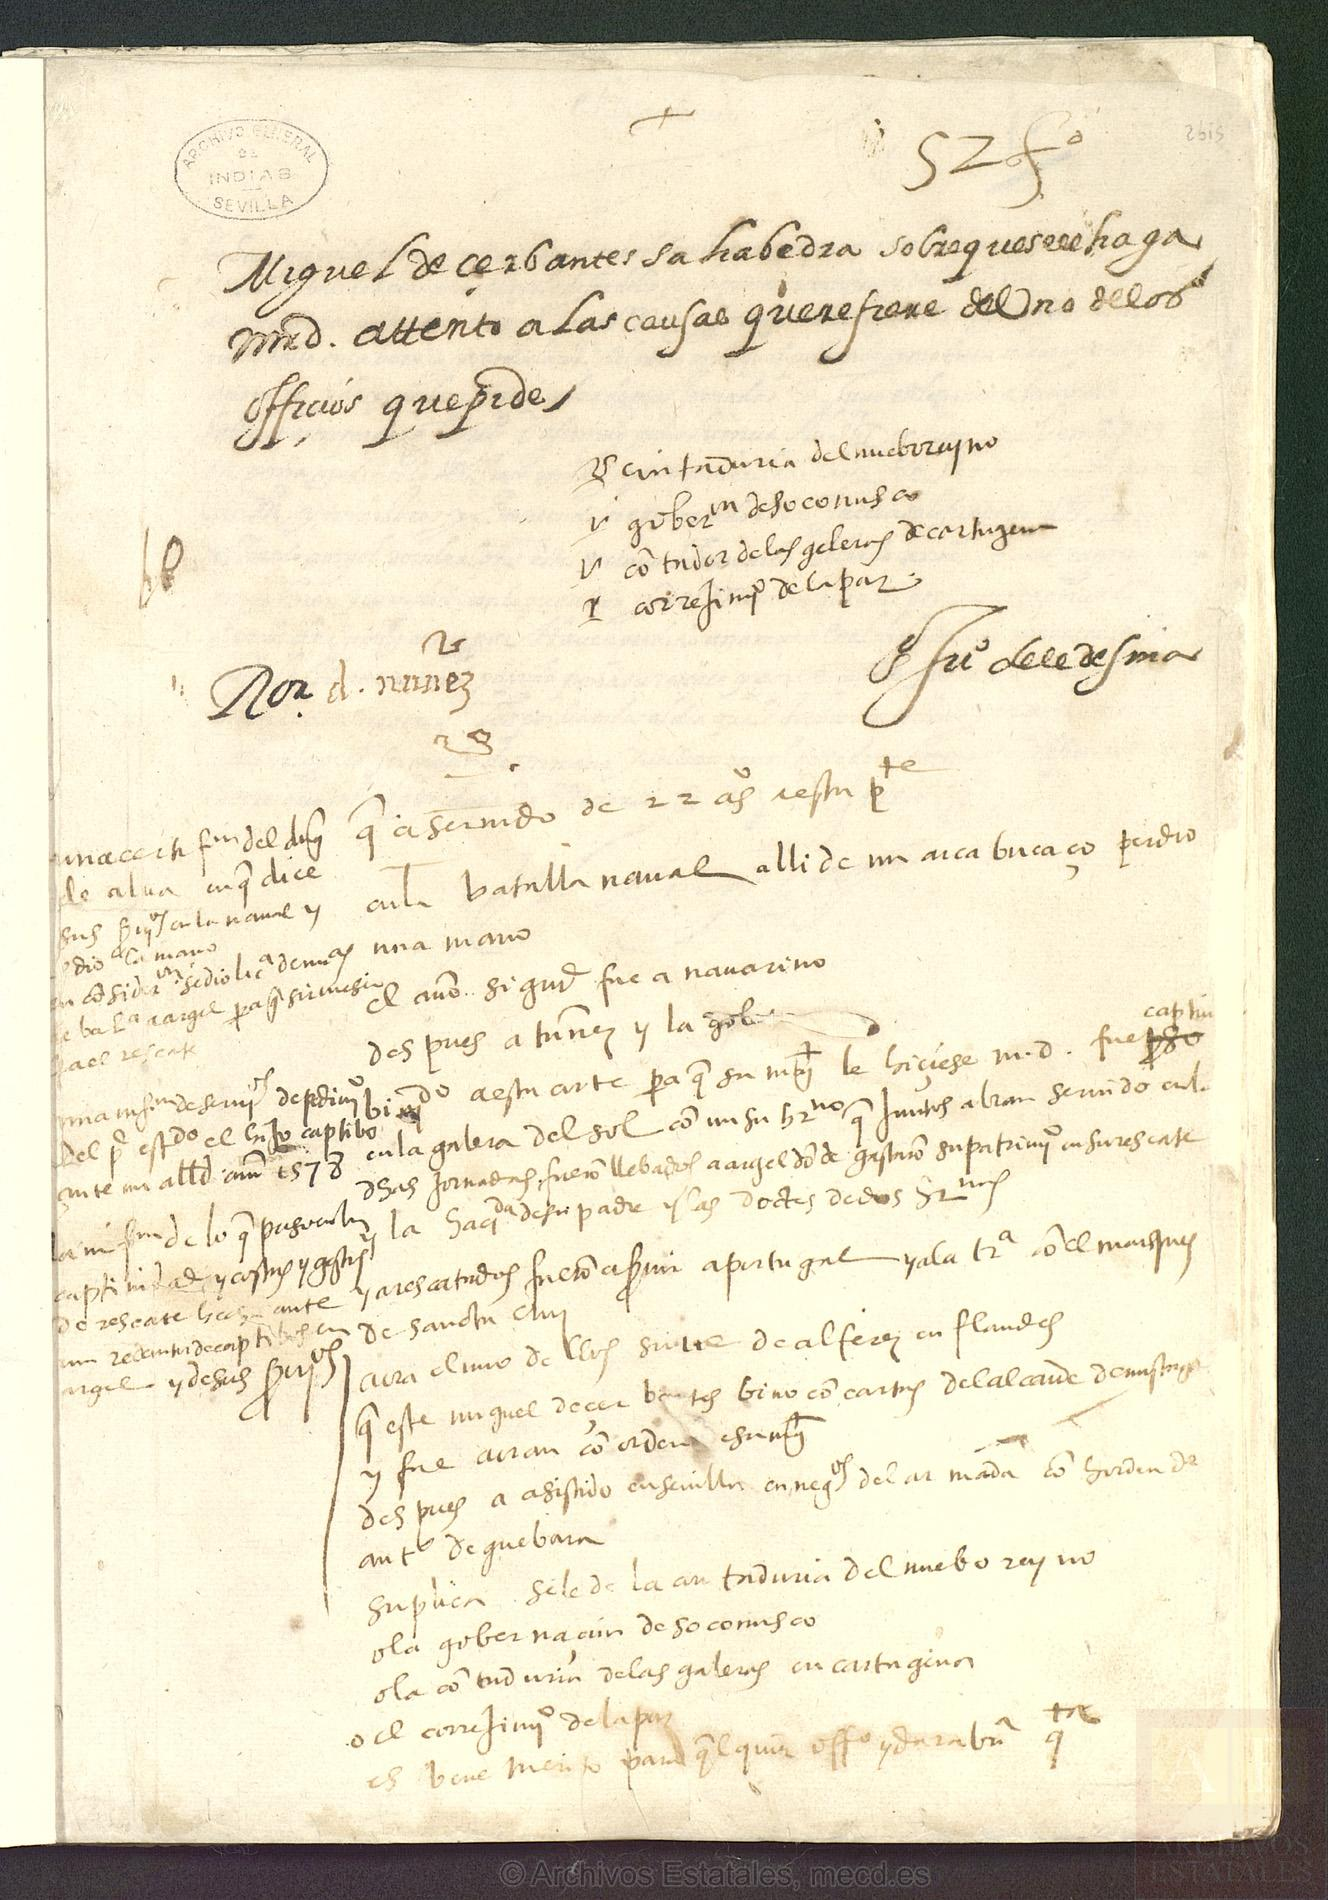 Record on the merits and services of Miguel de Cervantes Saavedra